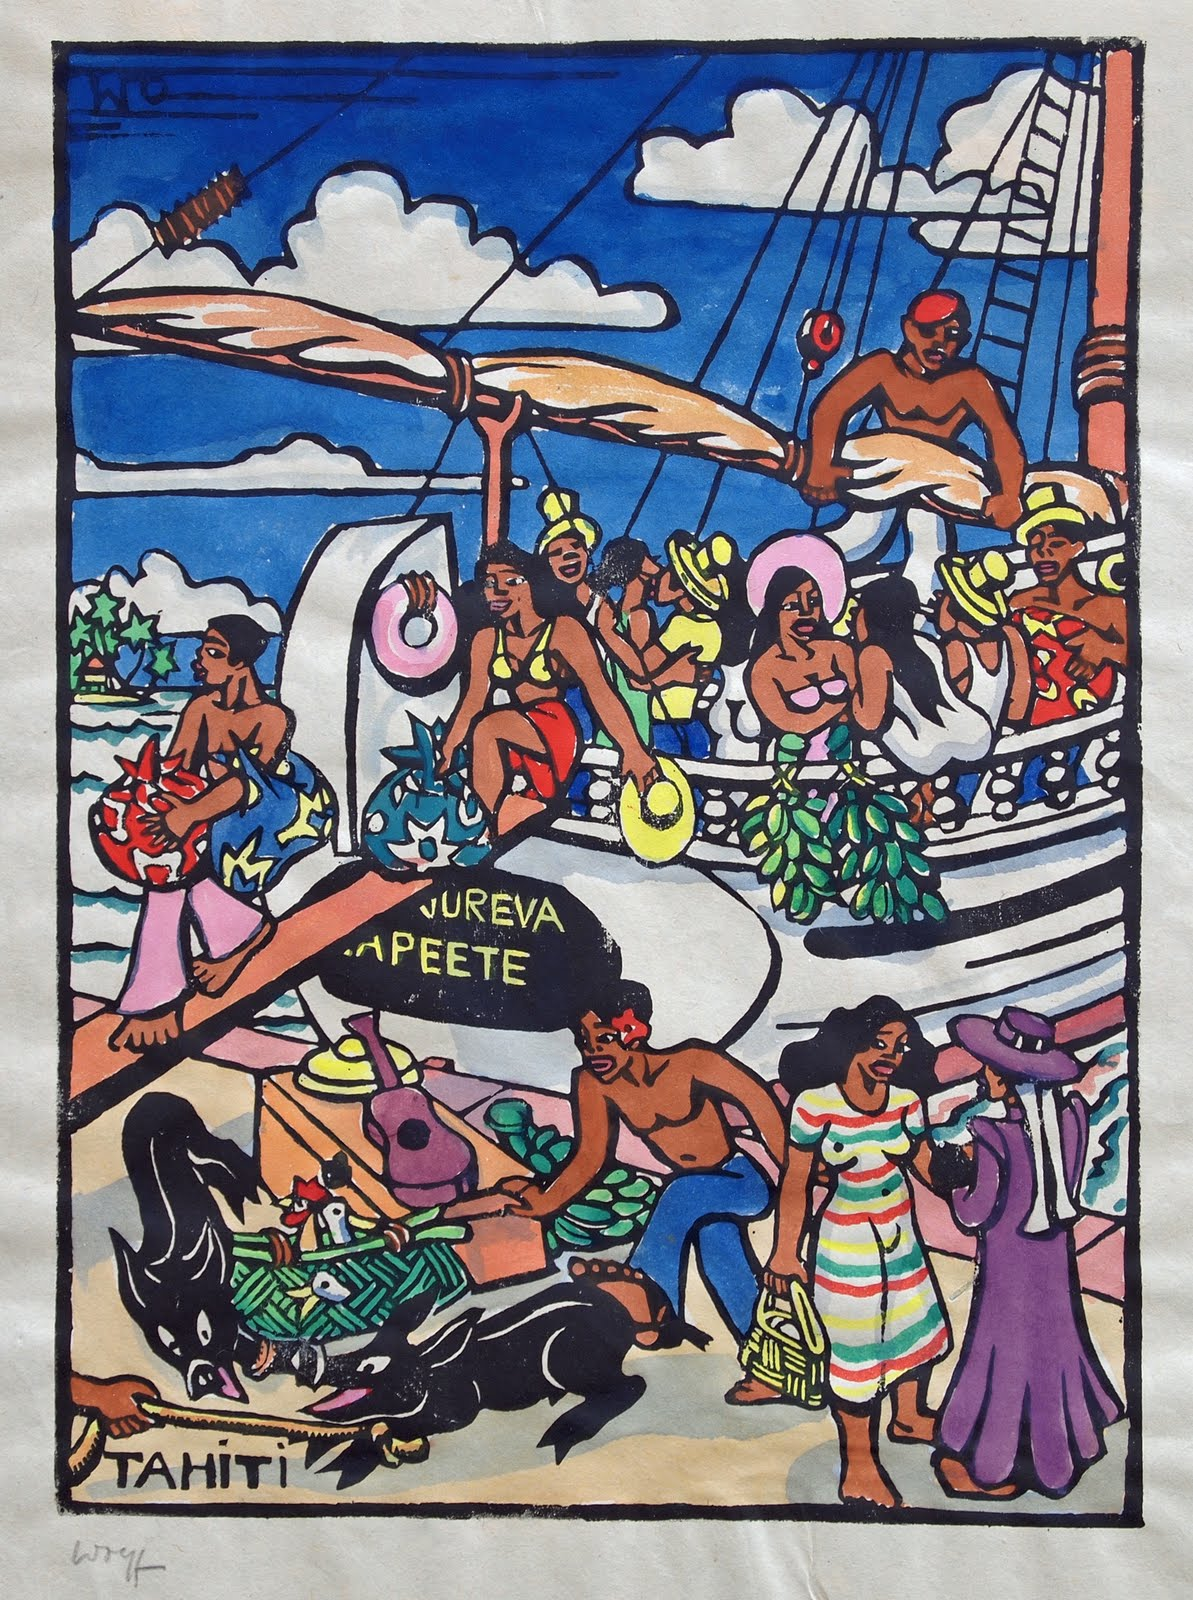 Harbor of Papeete, hand colored block print, no date, 22 x 16,5 cm, family-owned